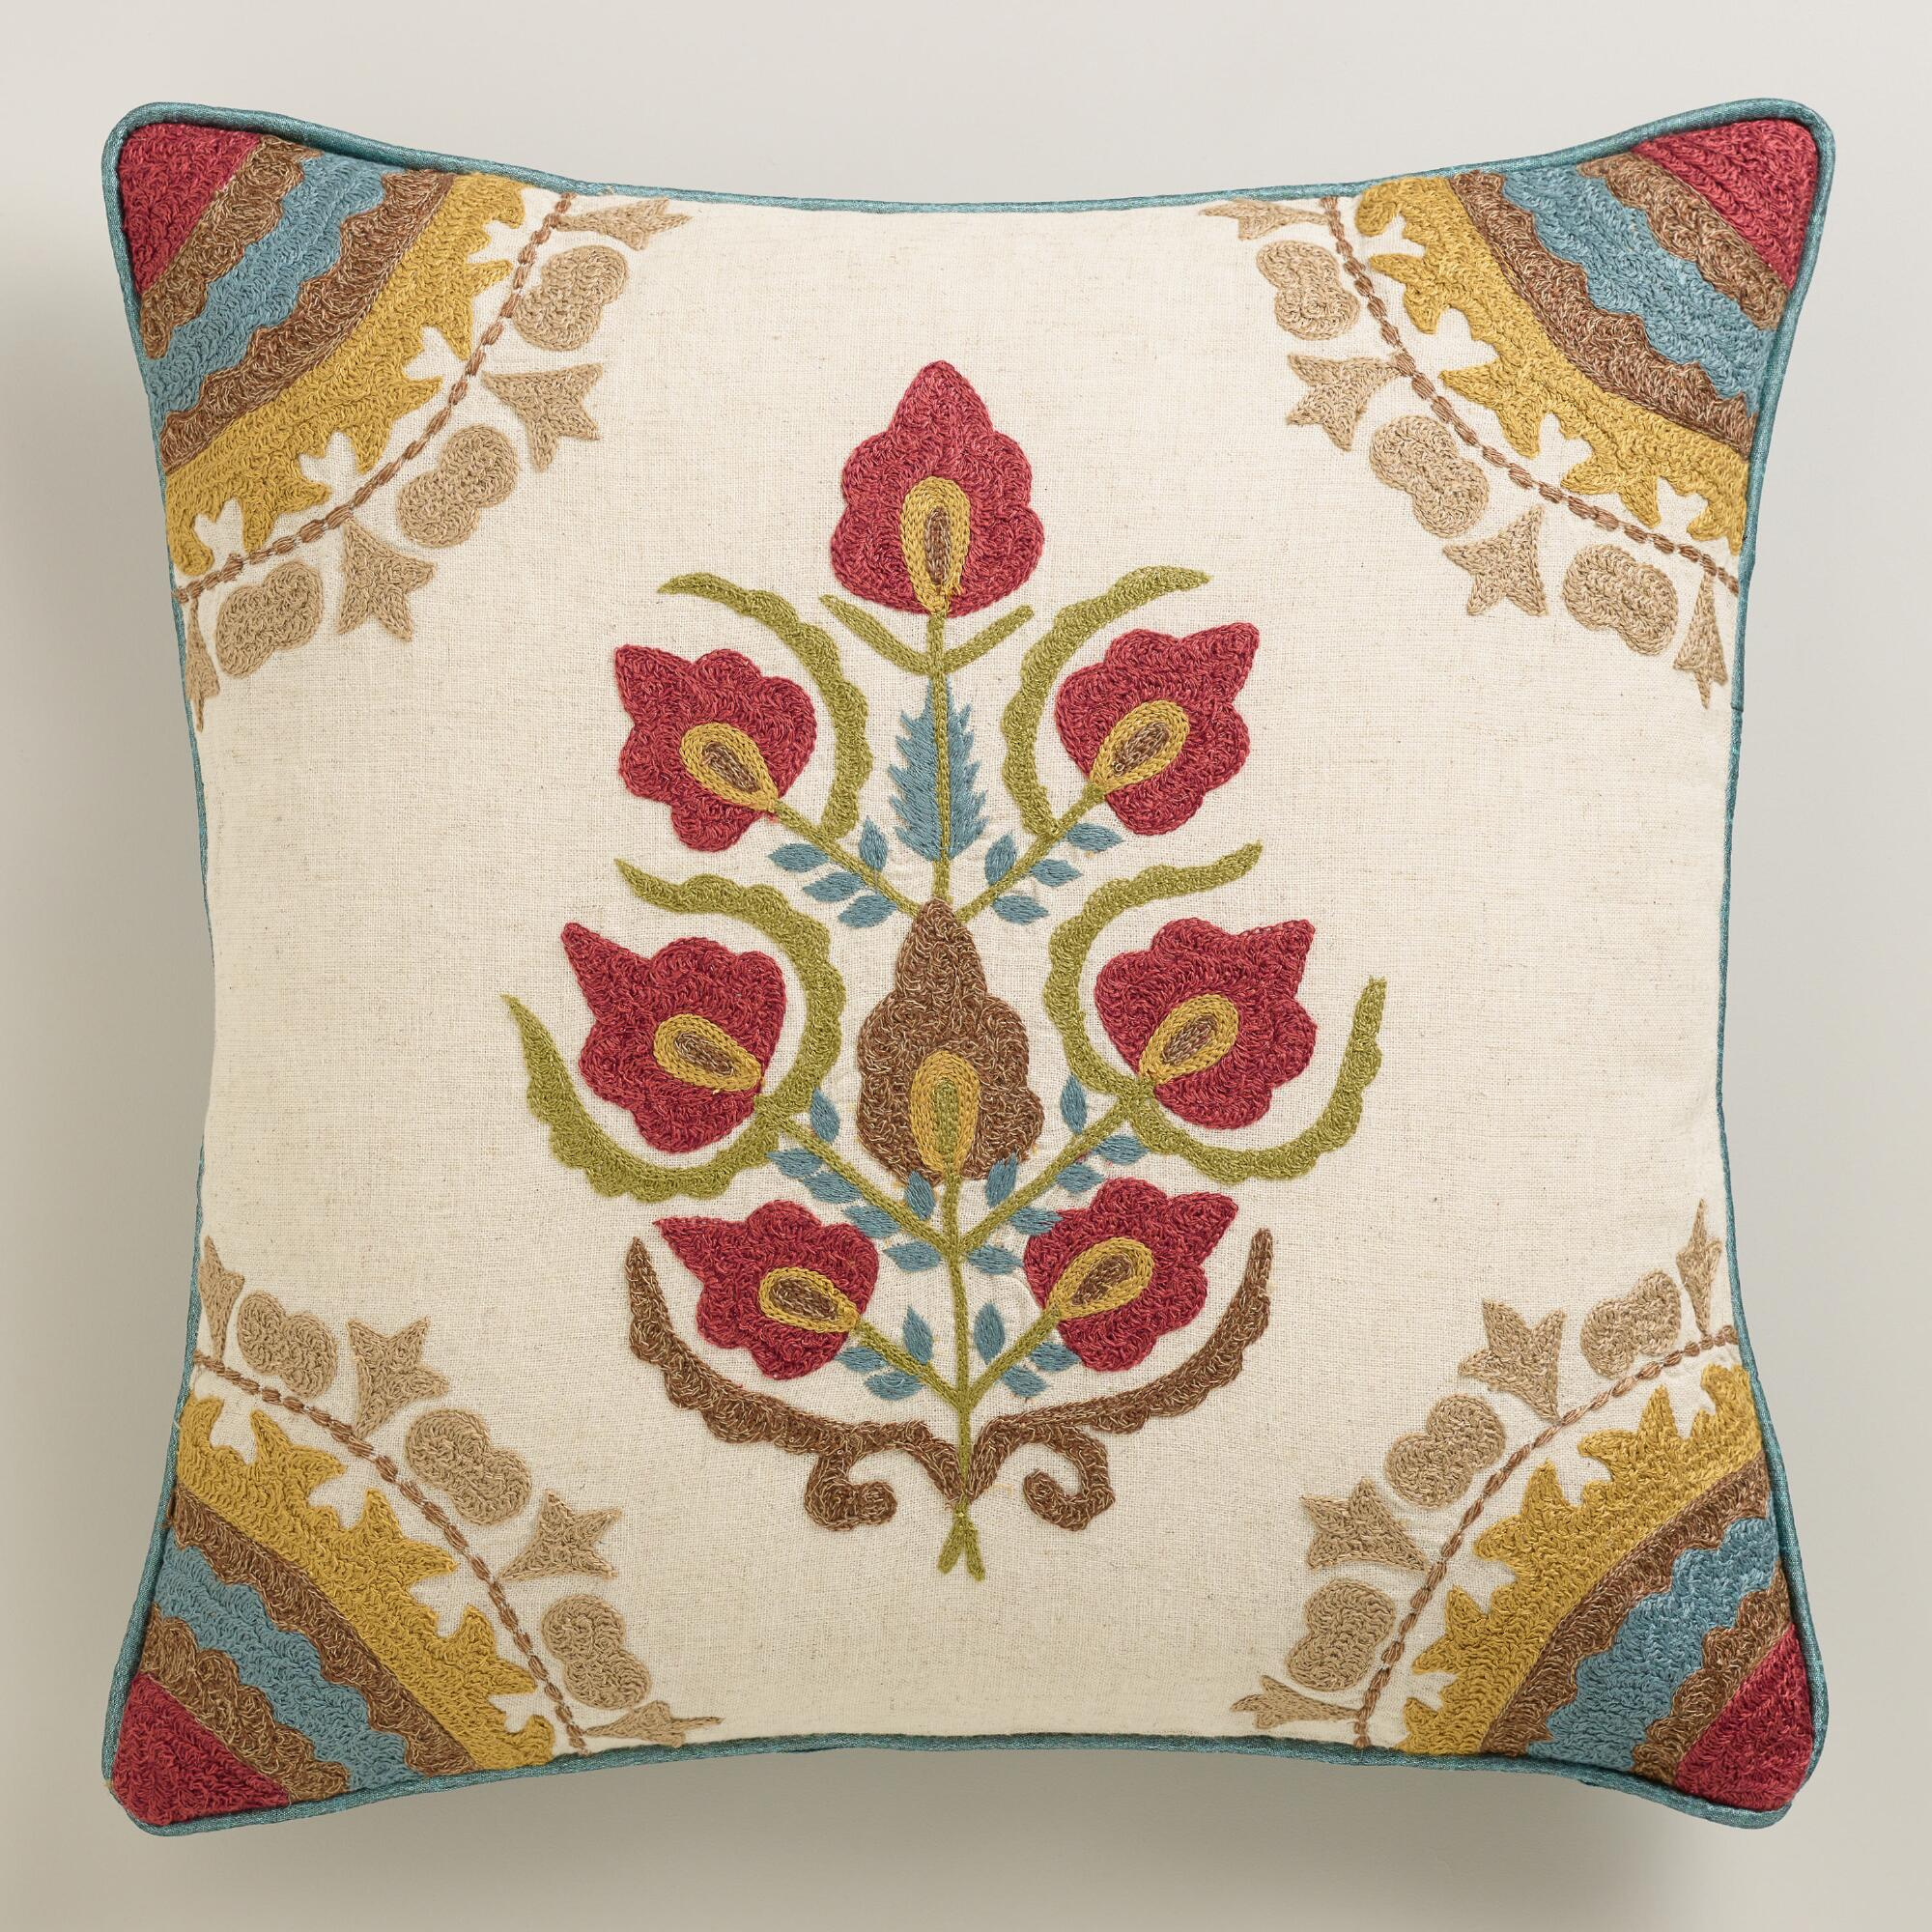 Throw Pillows For A Floral Couch : Red Floral Medallion Throw Pillow World Market